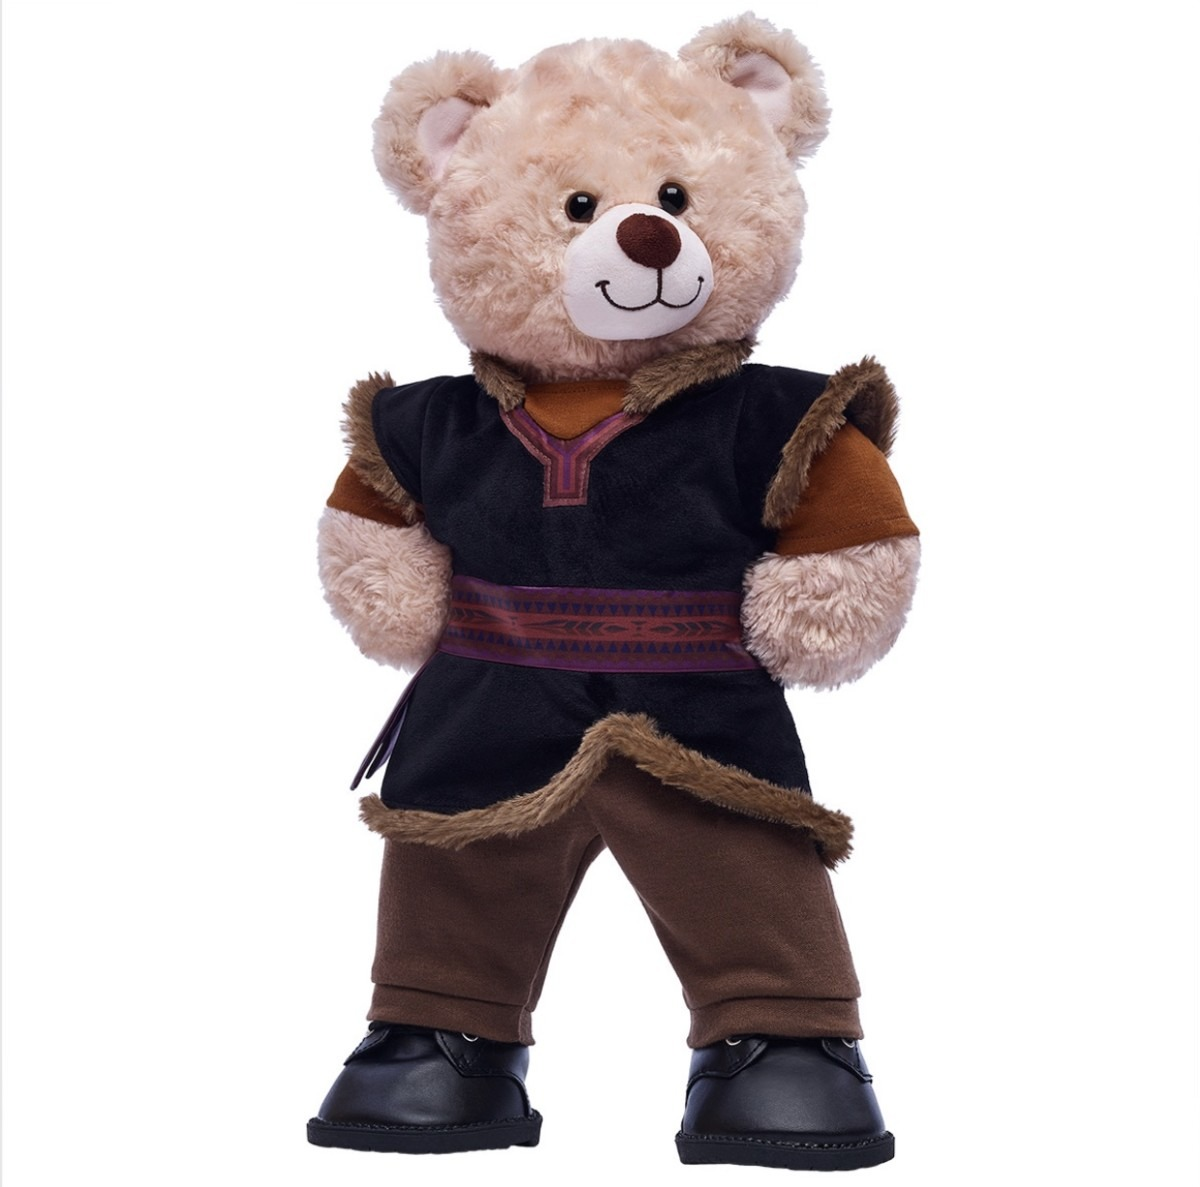 New Frozen 2 Collection at Build-A-Bear Workshop 2